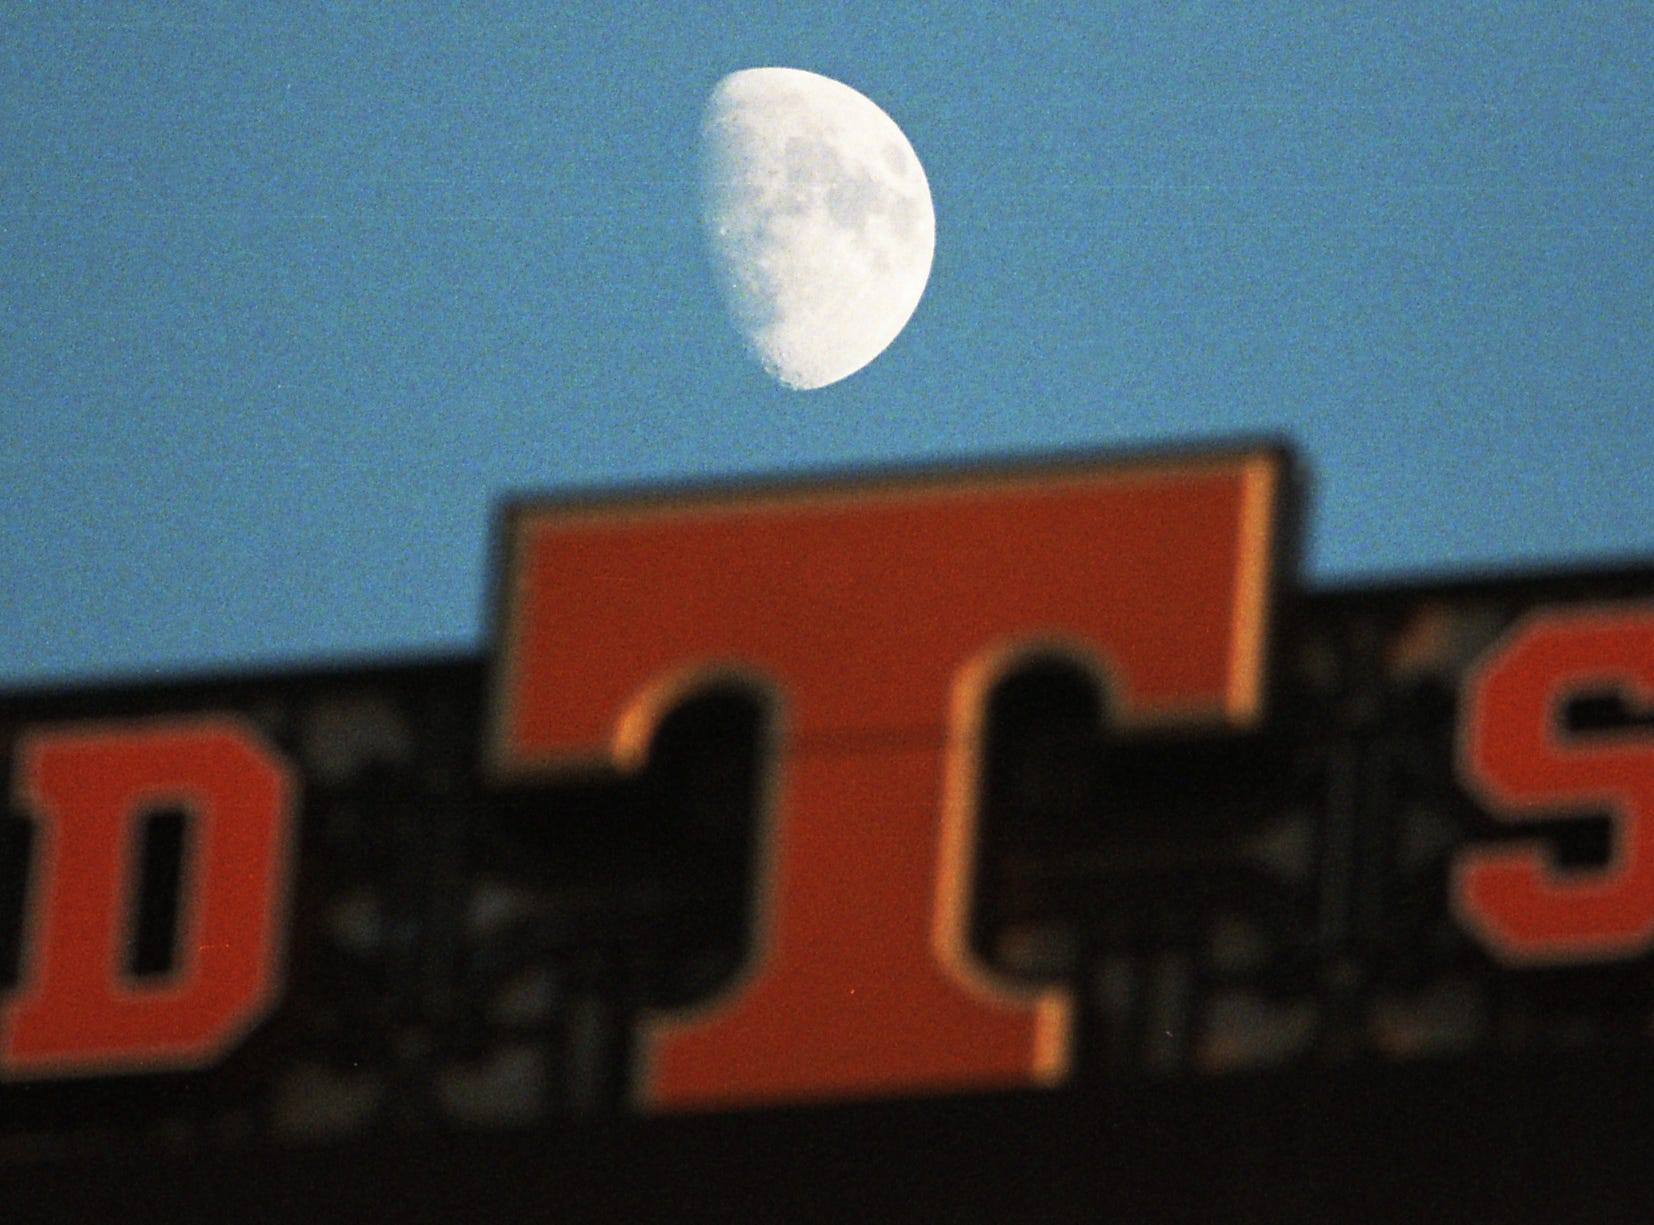 The moon rises over the scoreboard during a game between Tennessee and Missouri at Neyland Stadium in Knoxville, Tennessee on Saturday, November 17, 2018.